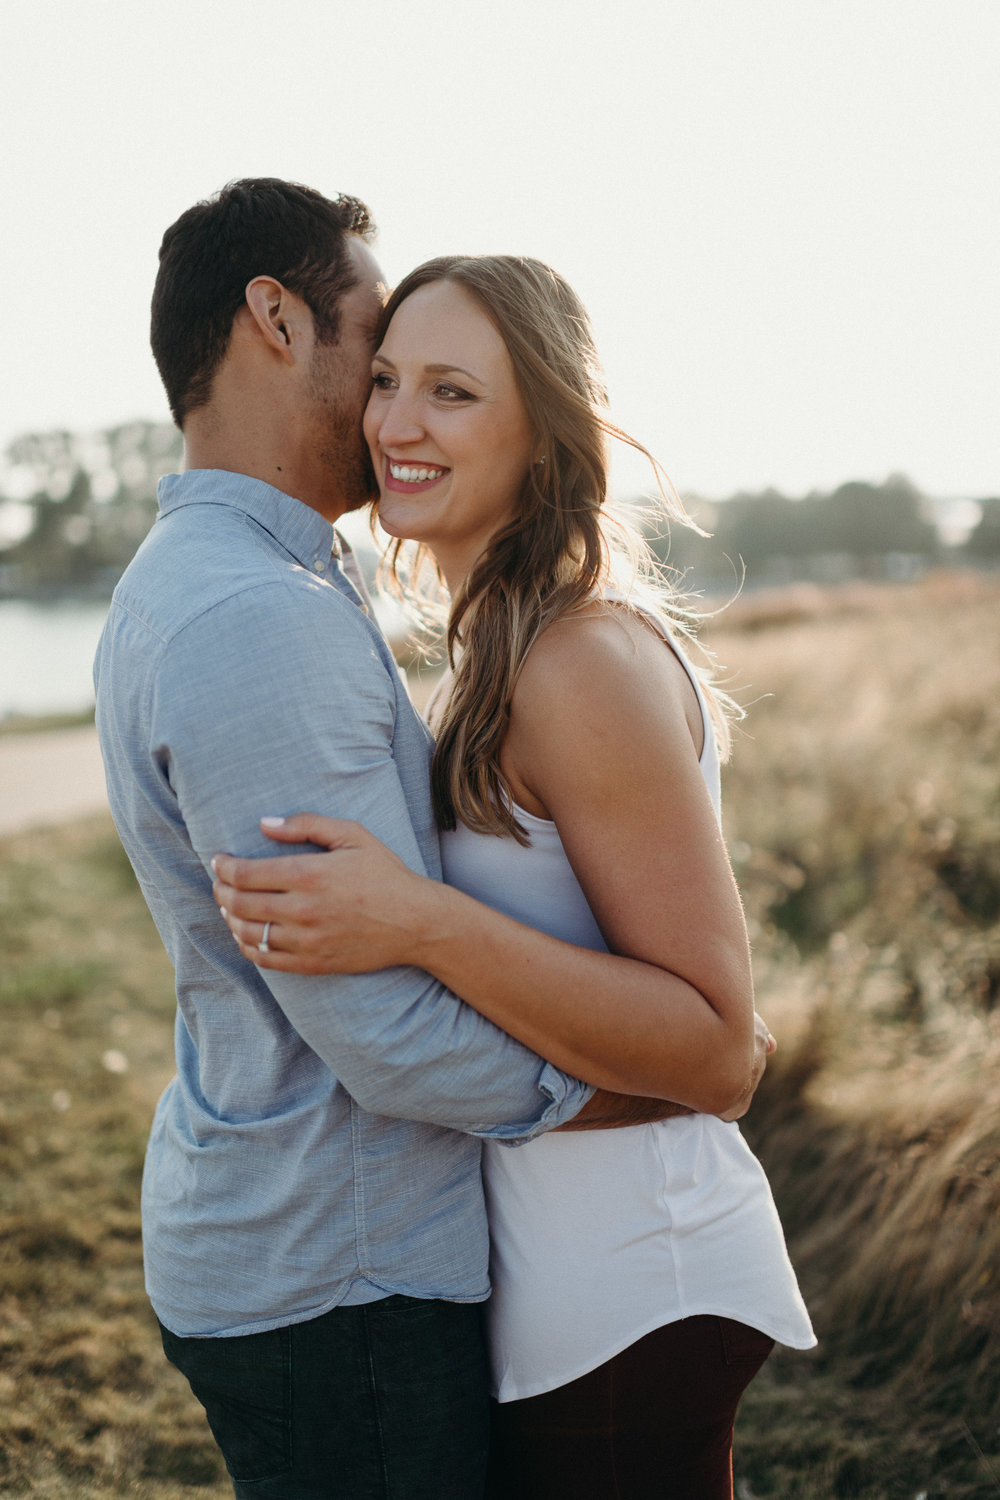 Woman laughs as her fiancé whispers in her ear.